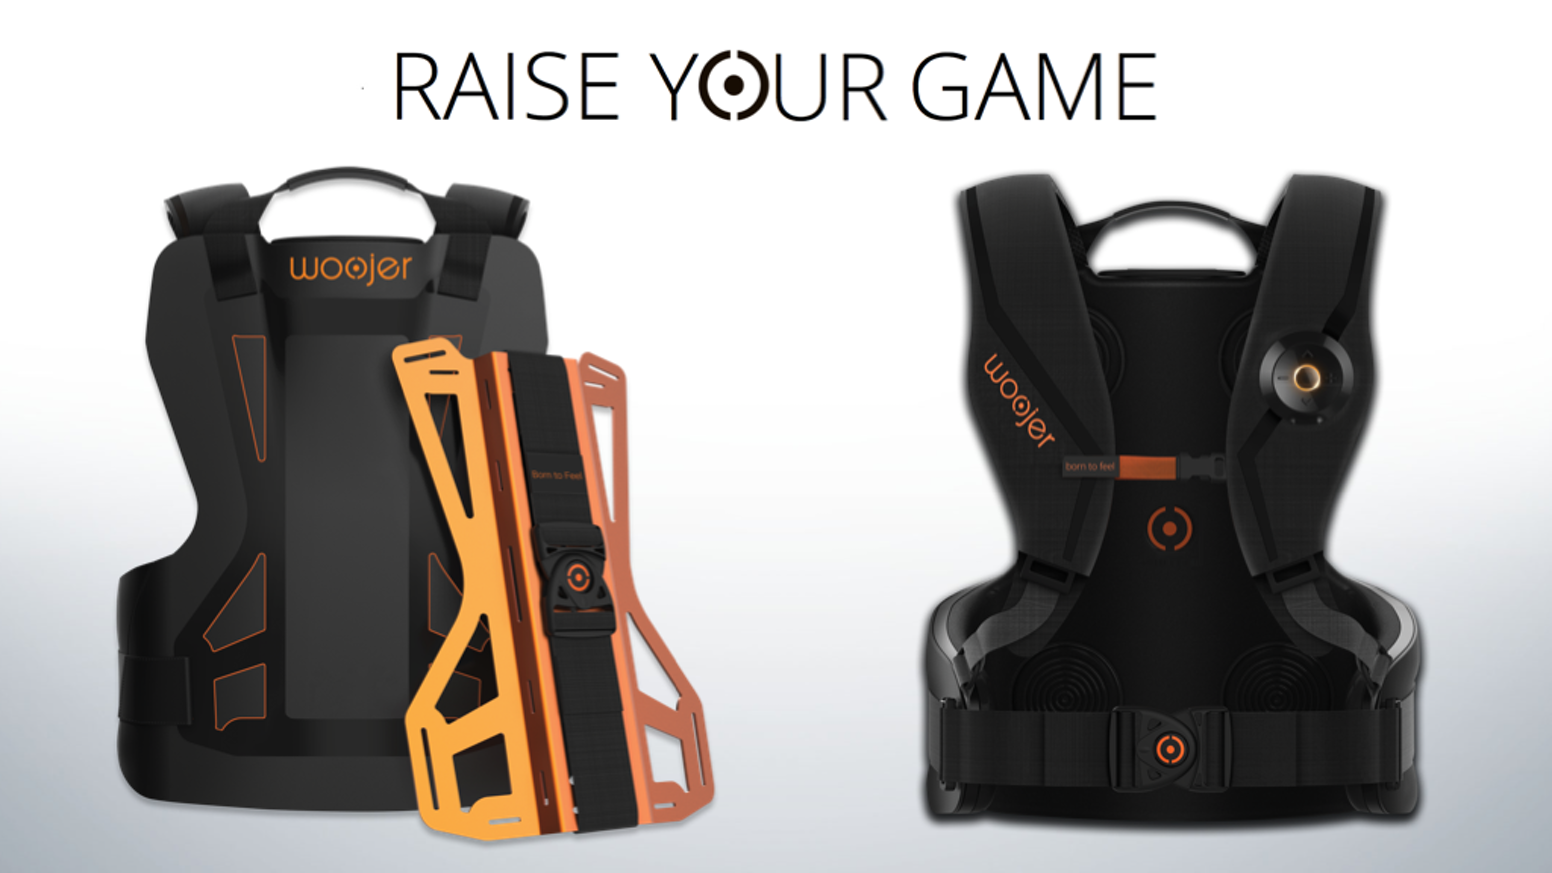 Woojer ryg™: The Most Powerful & Accurate Gaming & VR Vest